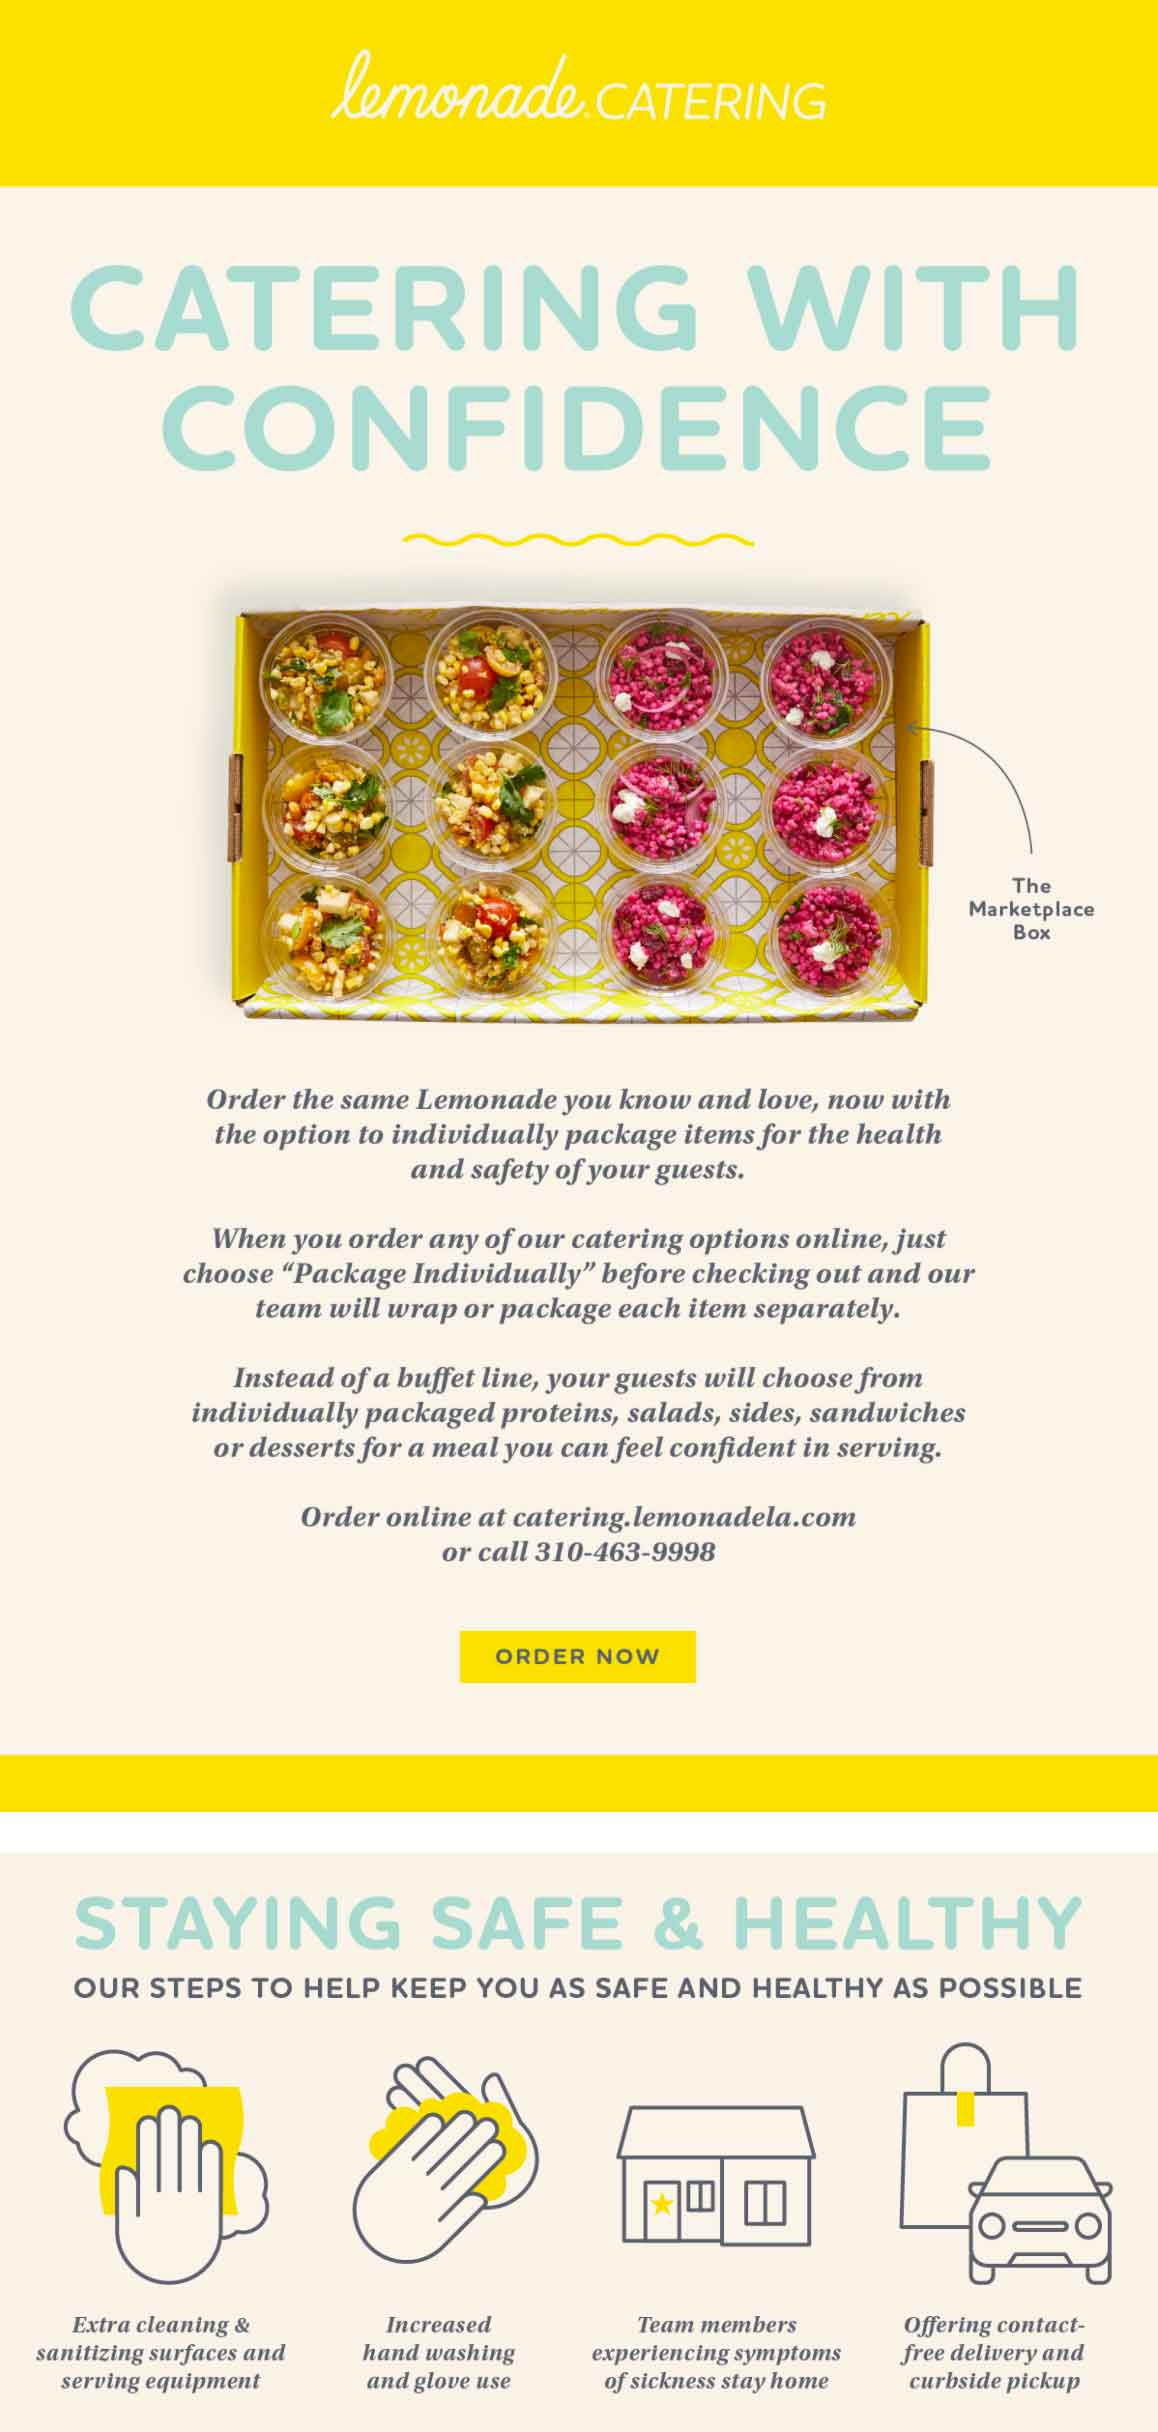 Lemonade: Catering with Confidence Email